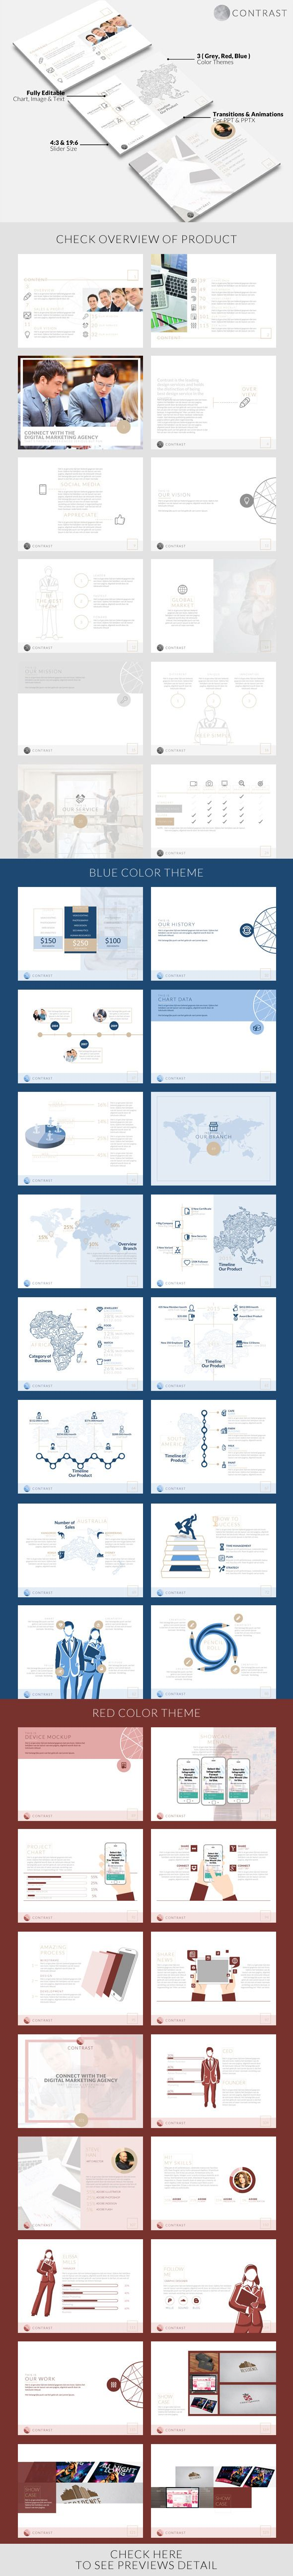 Contrast Powerpoint Template (PowerPoint Templates)